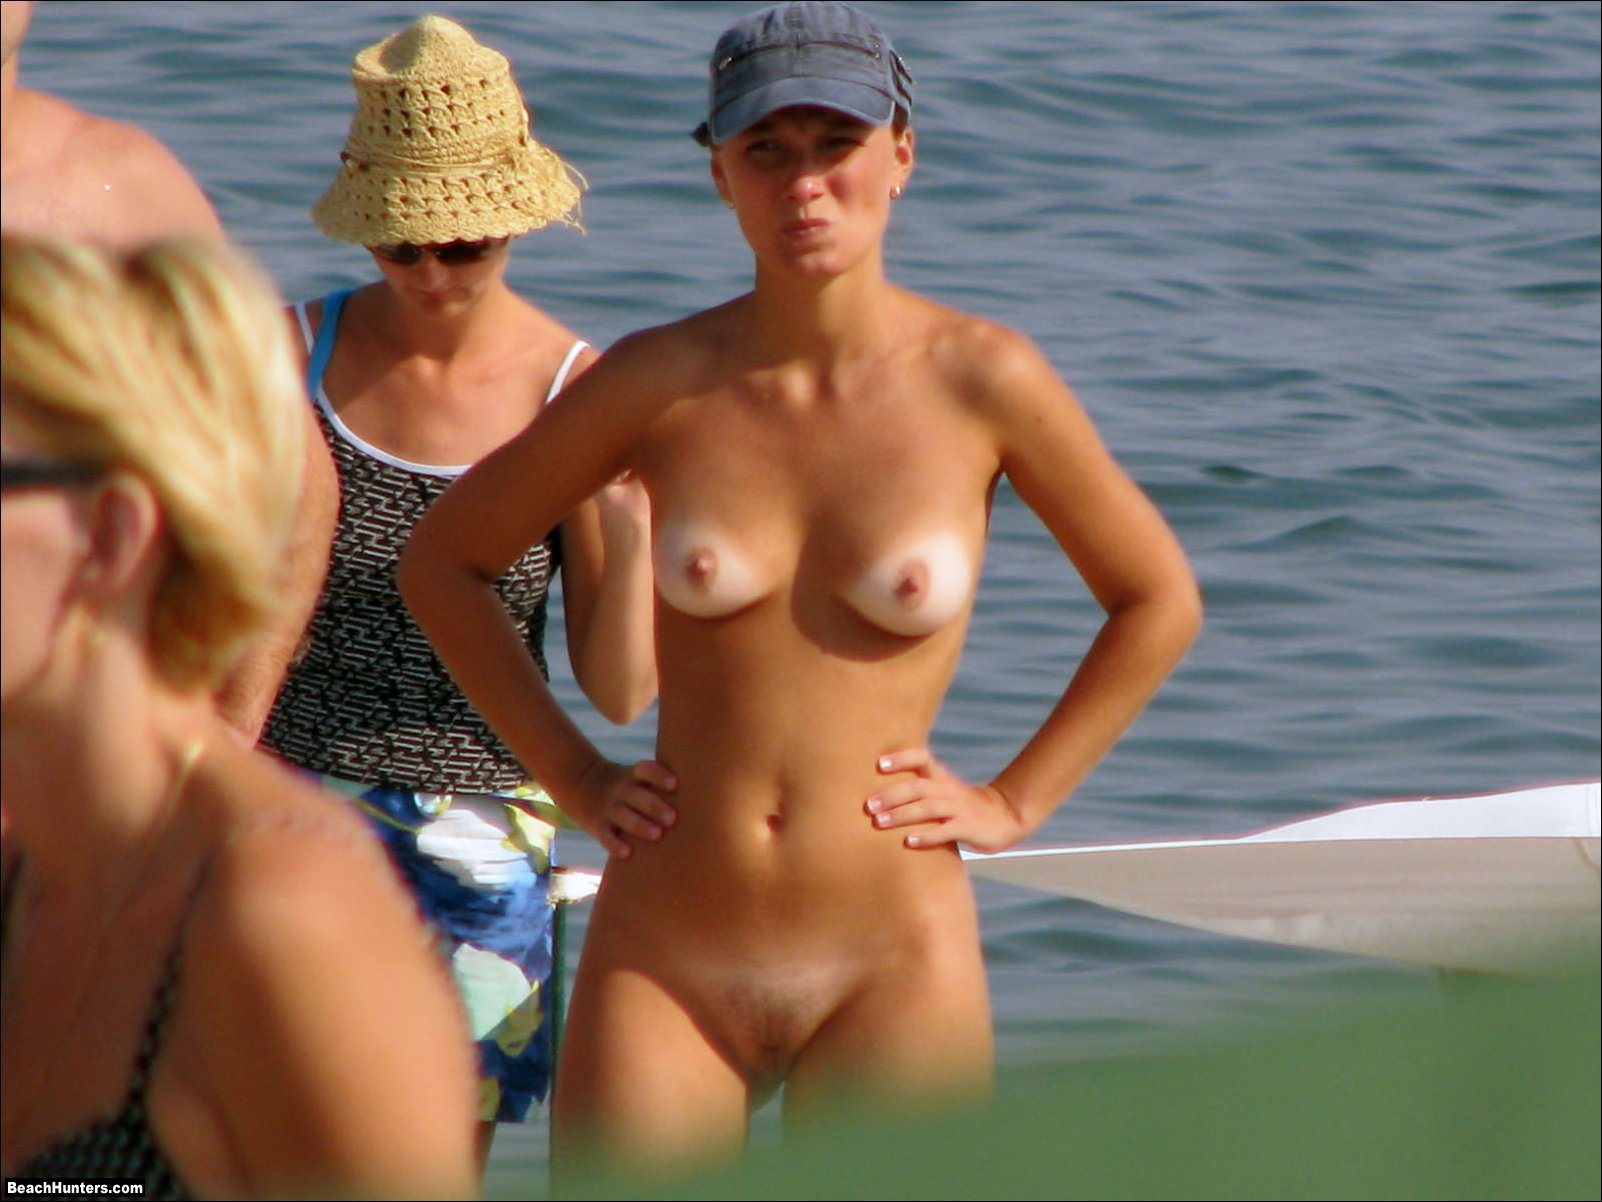 Totally nude beach volley pics porno images